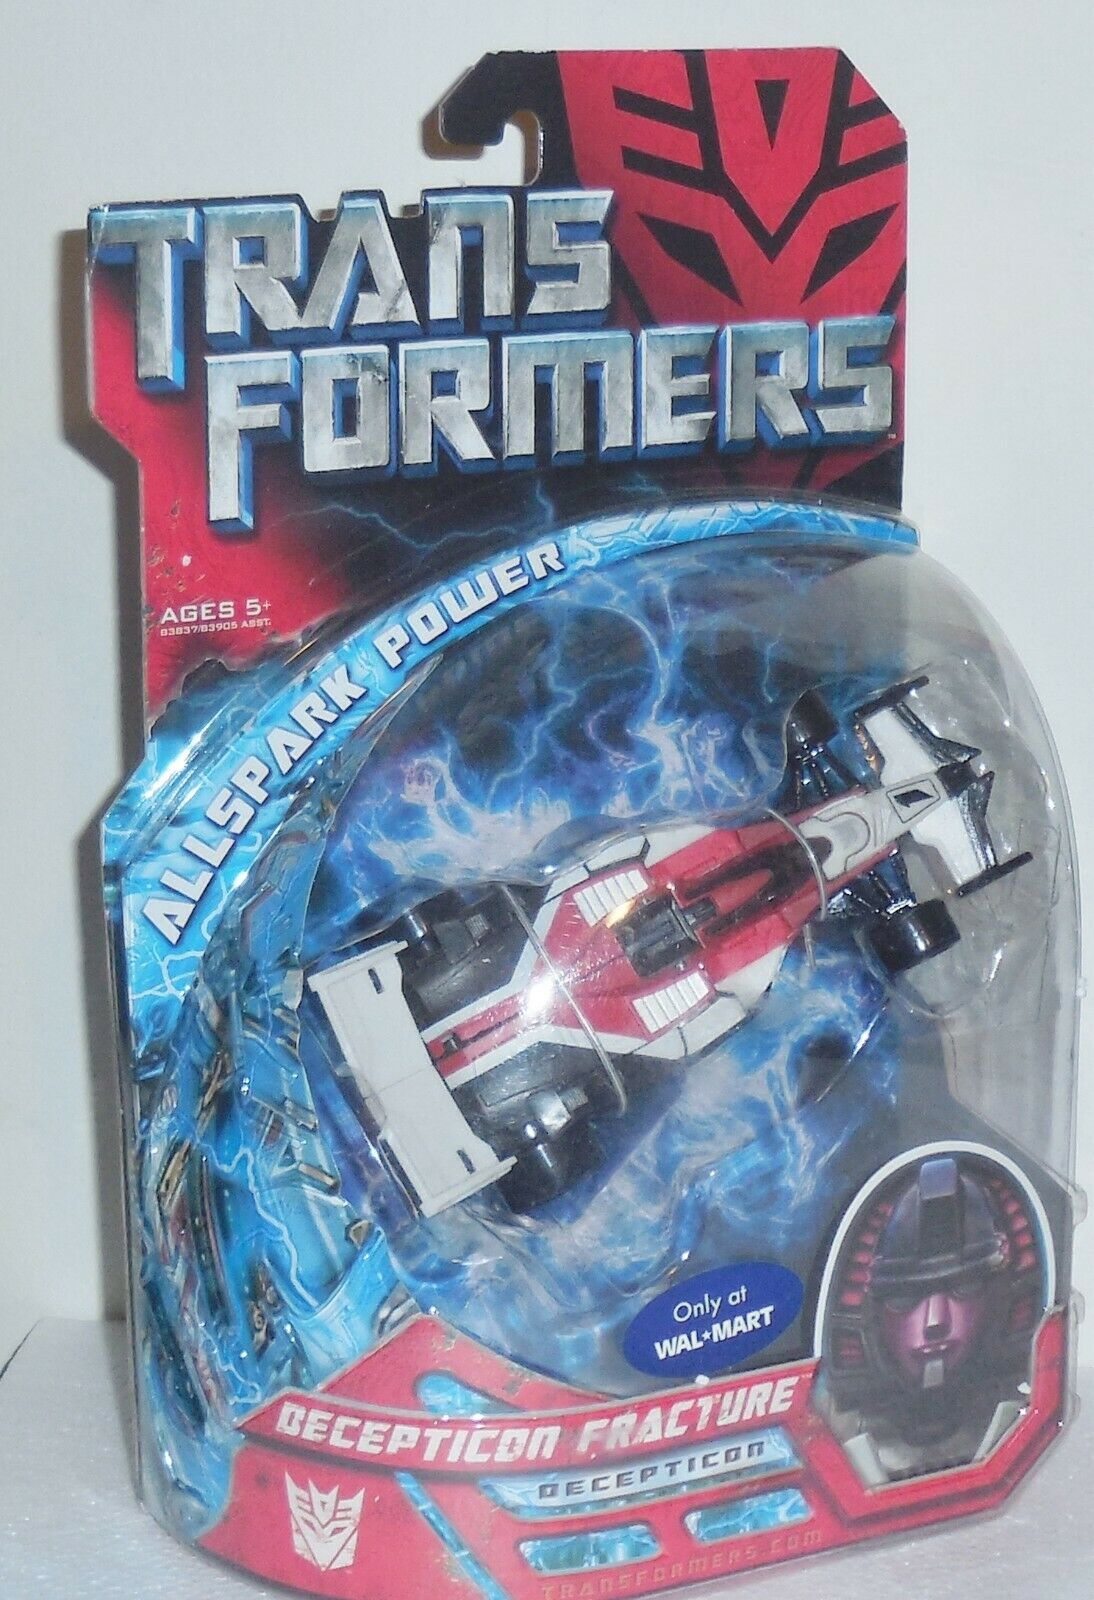 Transformers Film Fracture Mosc Nuovo Deluxe Mirage Auto Indy